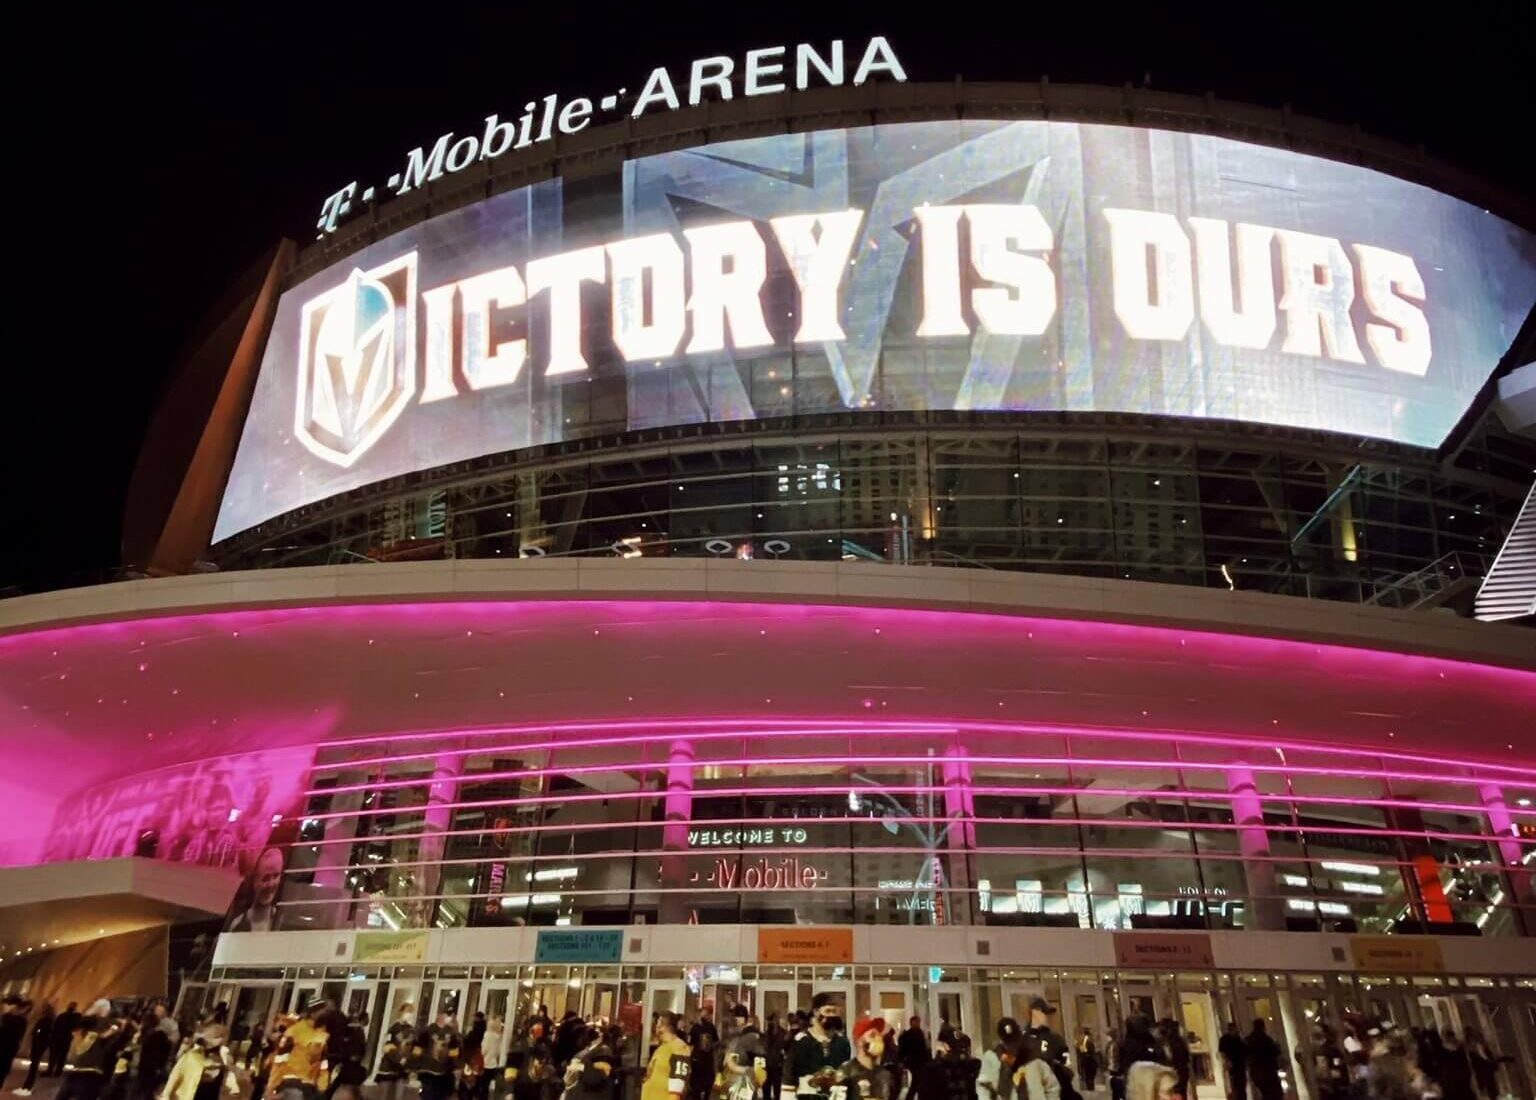 tmobile arena lights up for sports event at night